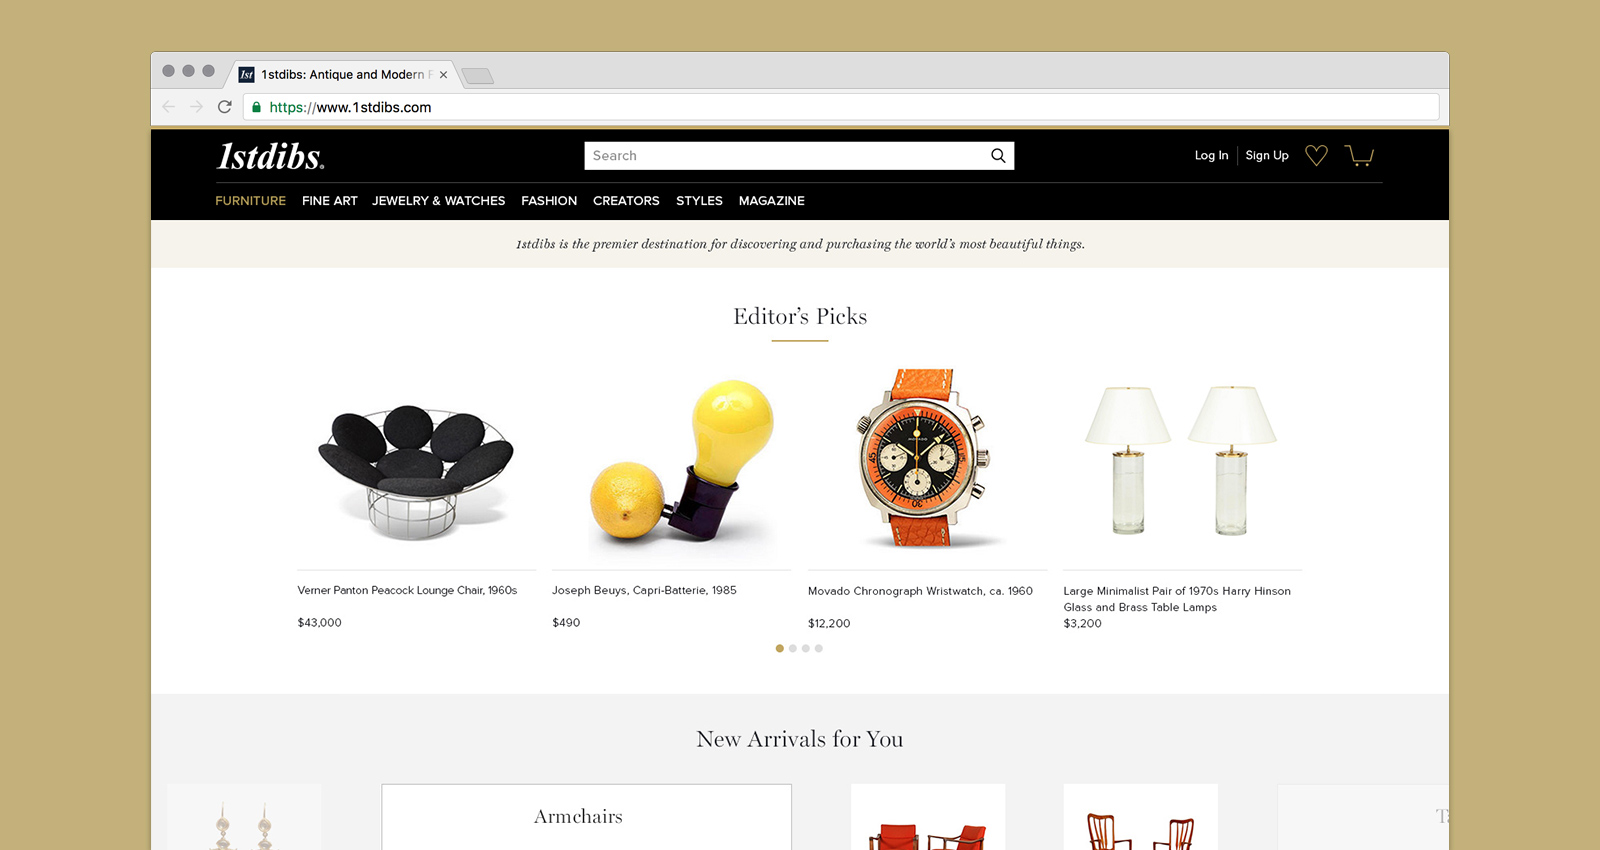 1stdibs_ecomm-feature_02